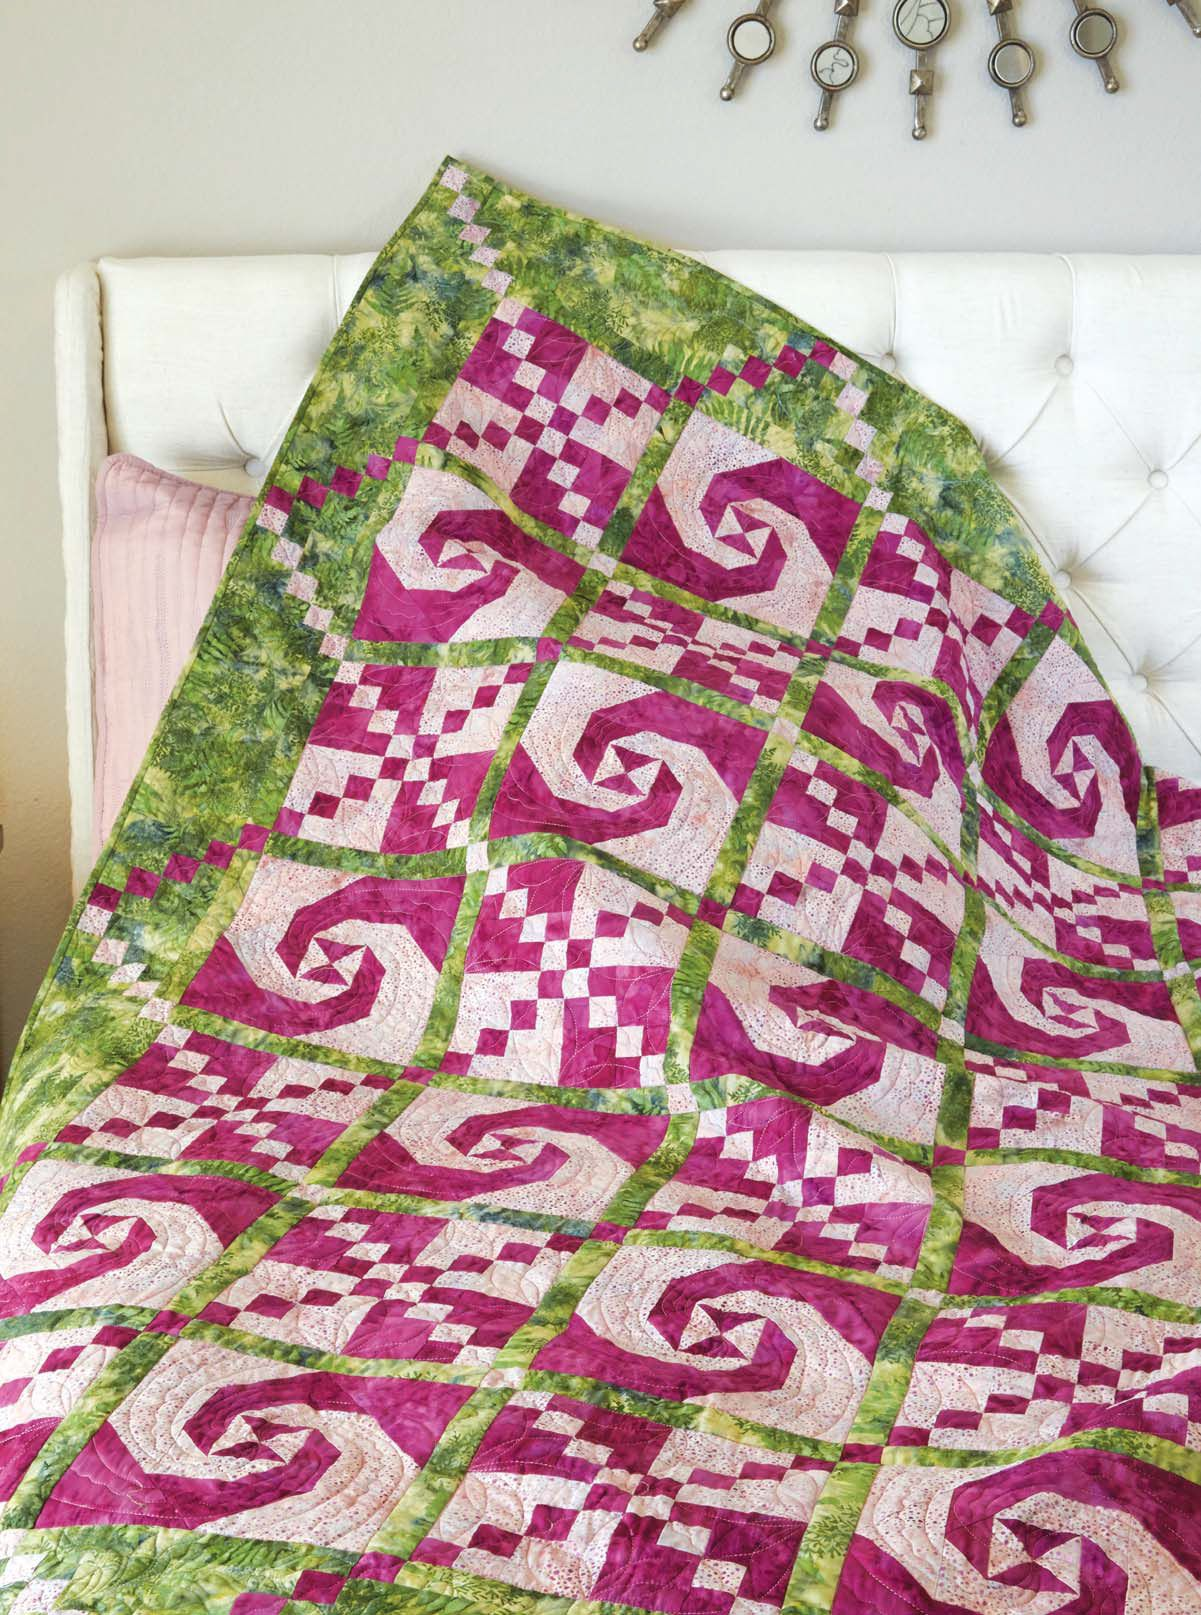 Twist and Turn quilt pattern: Shades of pink and green create this ...